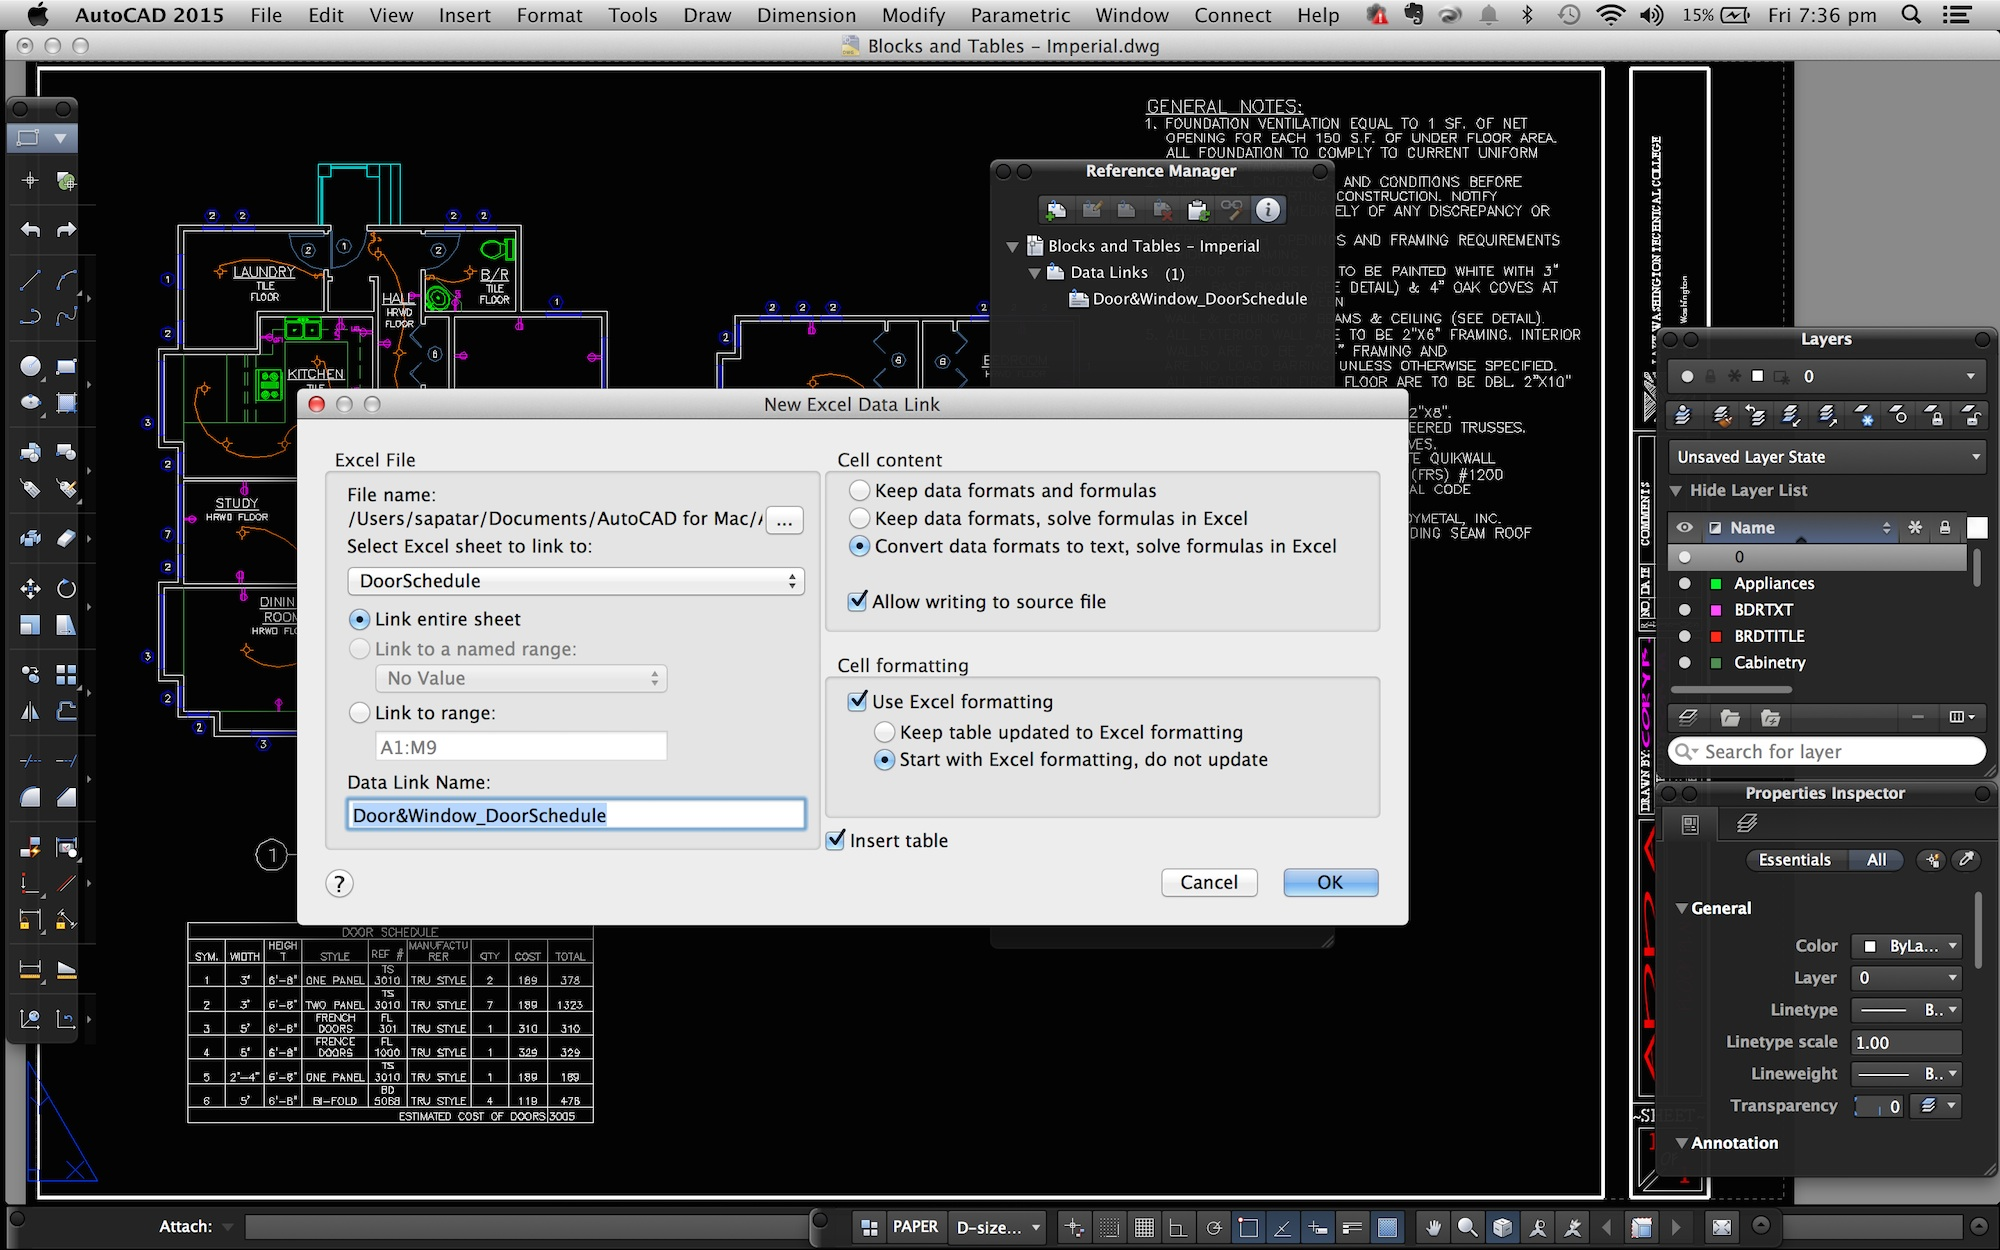 AutoCAD Architecture 2015 mac